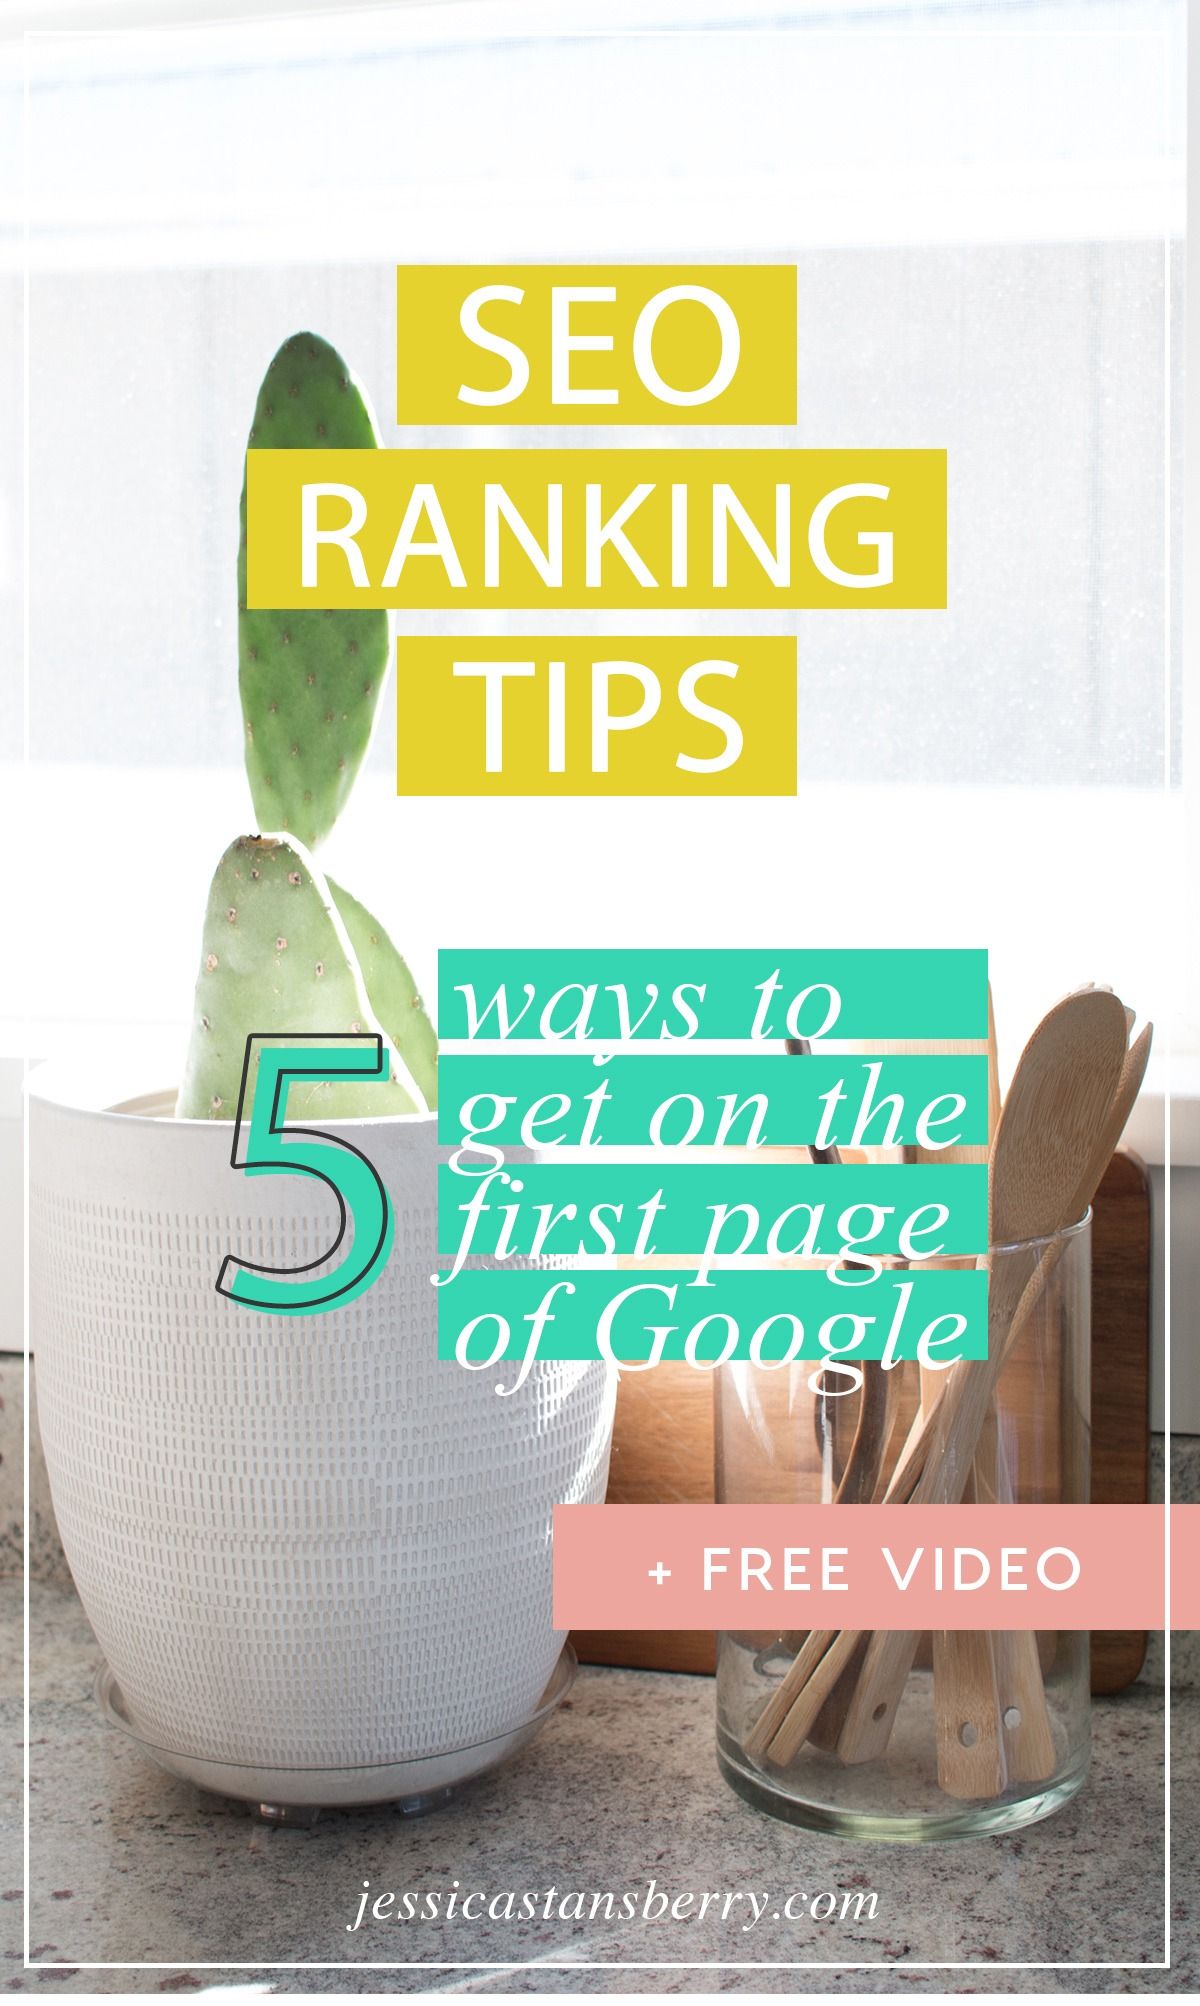 SEO ranking tips   5 ways to get on the first page of Google